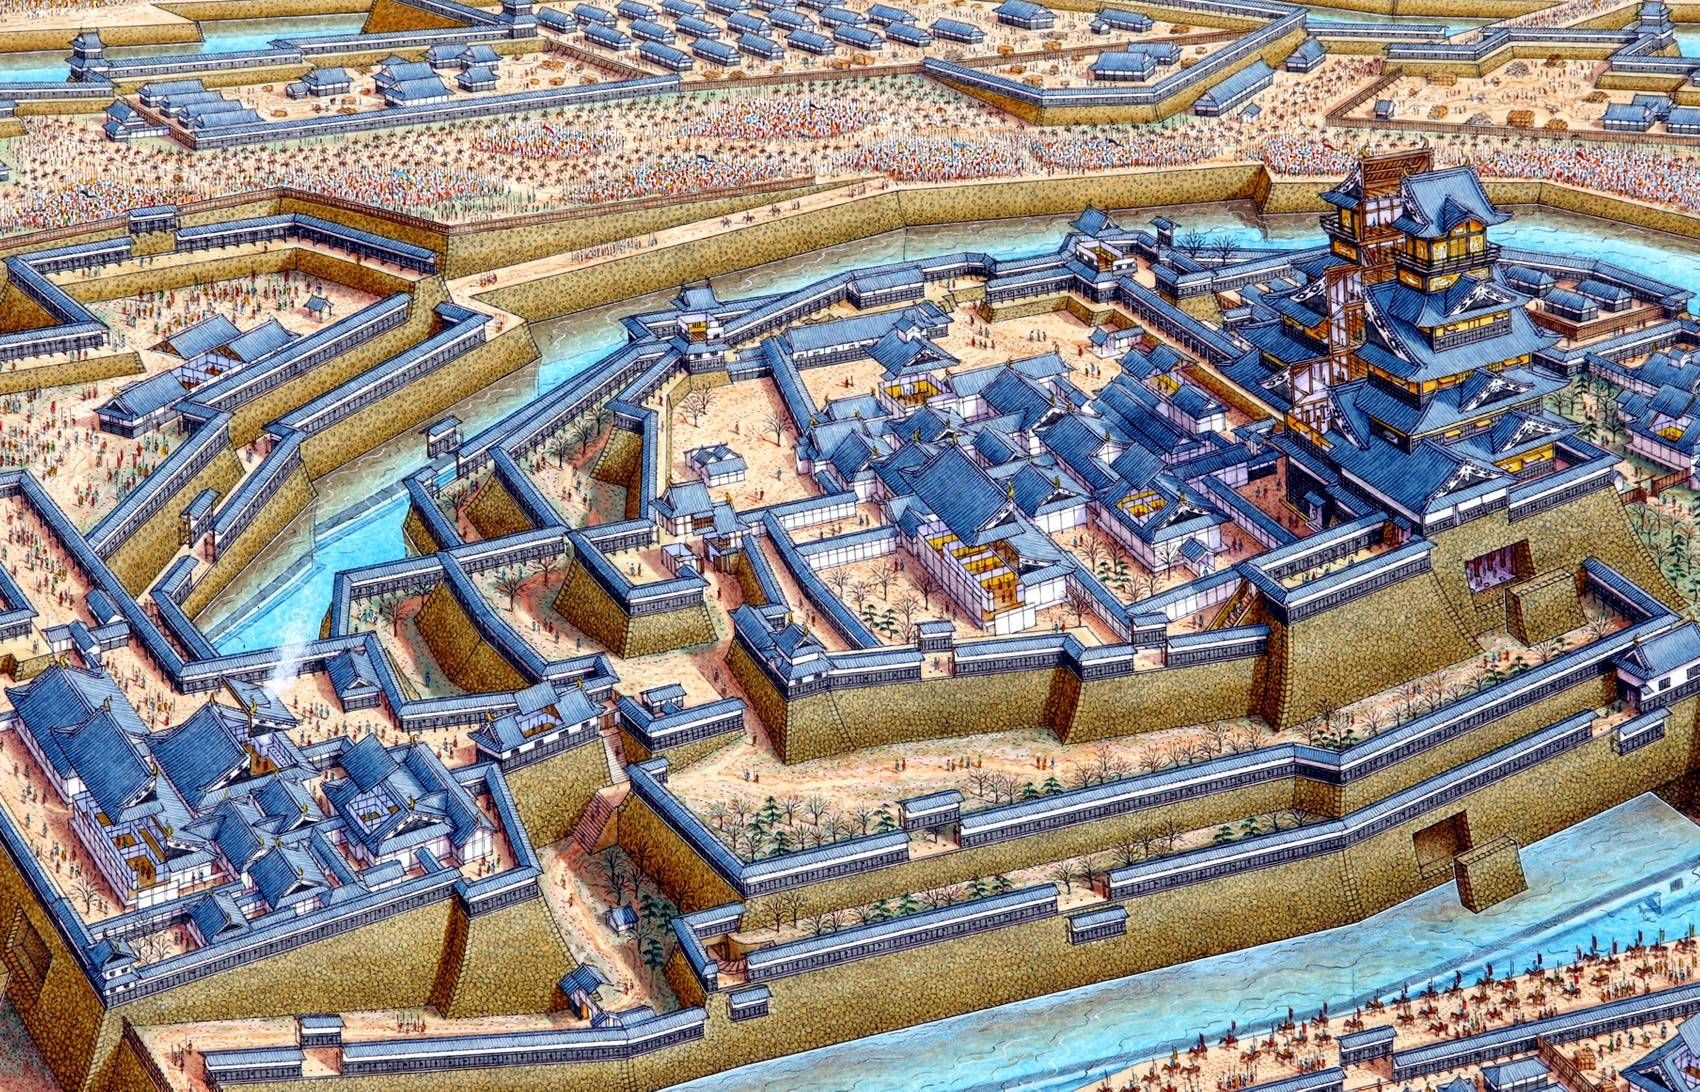 Siege of Osaka Castle | Castle painting, Osaka castle ... on map of medieval castles, map of japan, map of austrian castles, map of minoan crete, map of hong kong, map of belgian castles, map of german castles, map of kinkaku-ji, map of polish castles, map of hokkaido, map of bavarian castles, map of hakata, map of english castles, map of european castles, map of shanghai, map of buddhist temples, map of scottish castles, map of danish castles, map of irish castles,